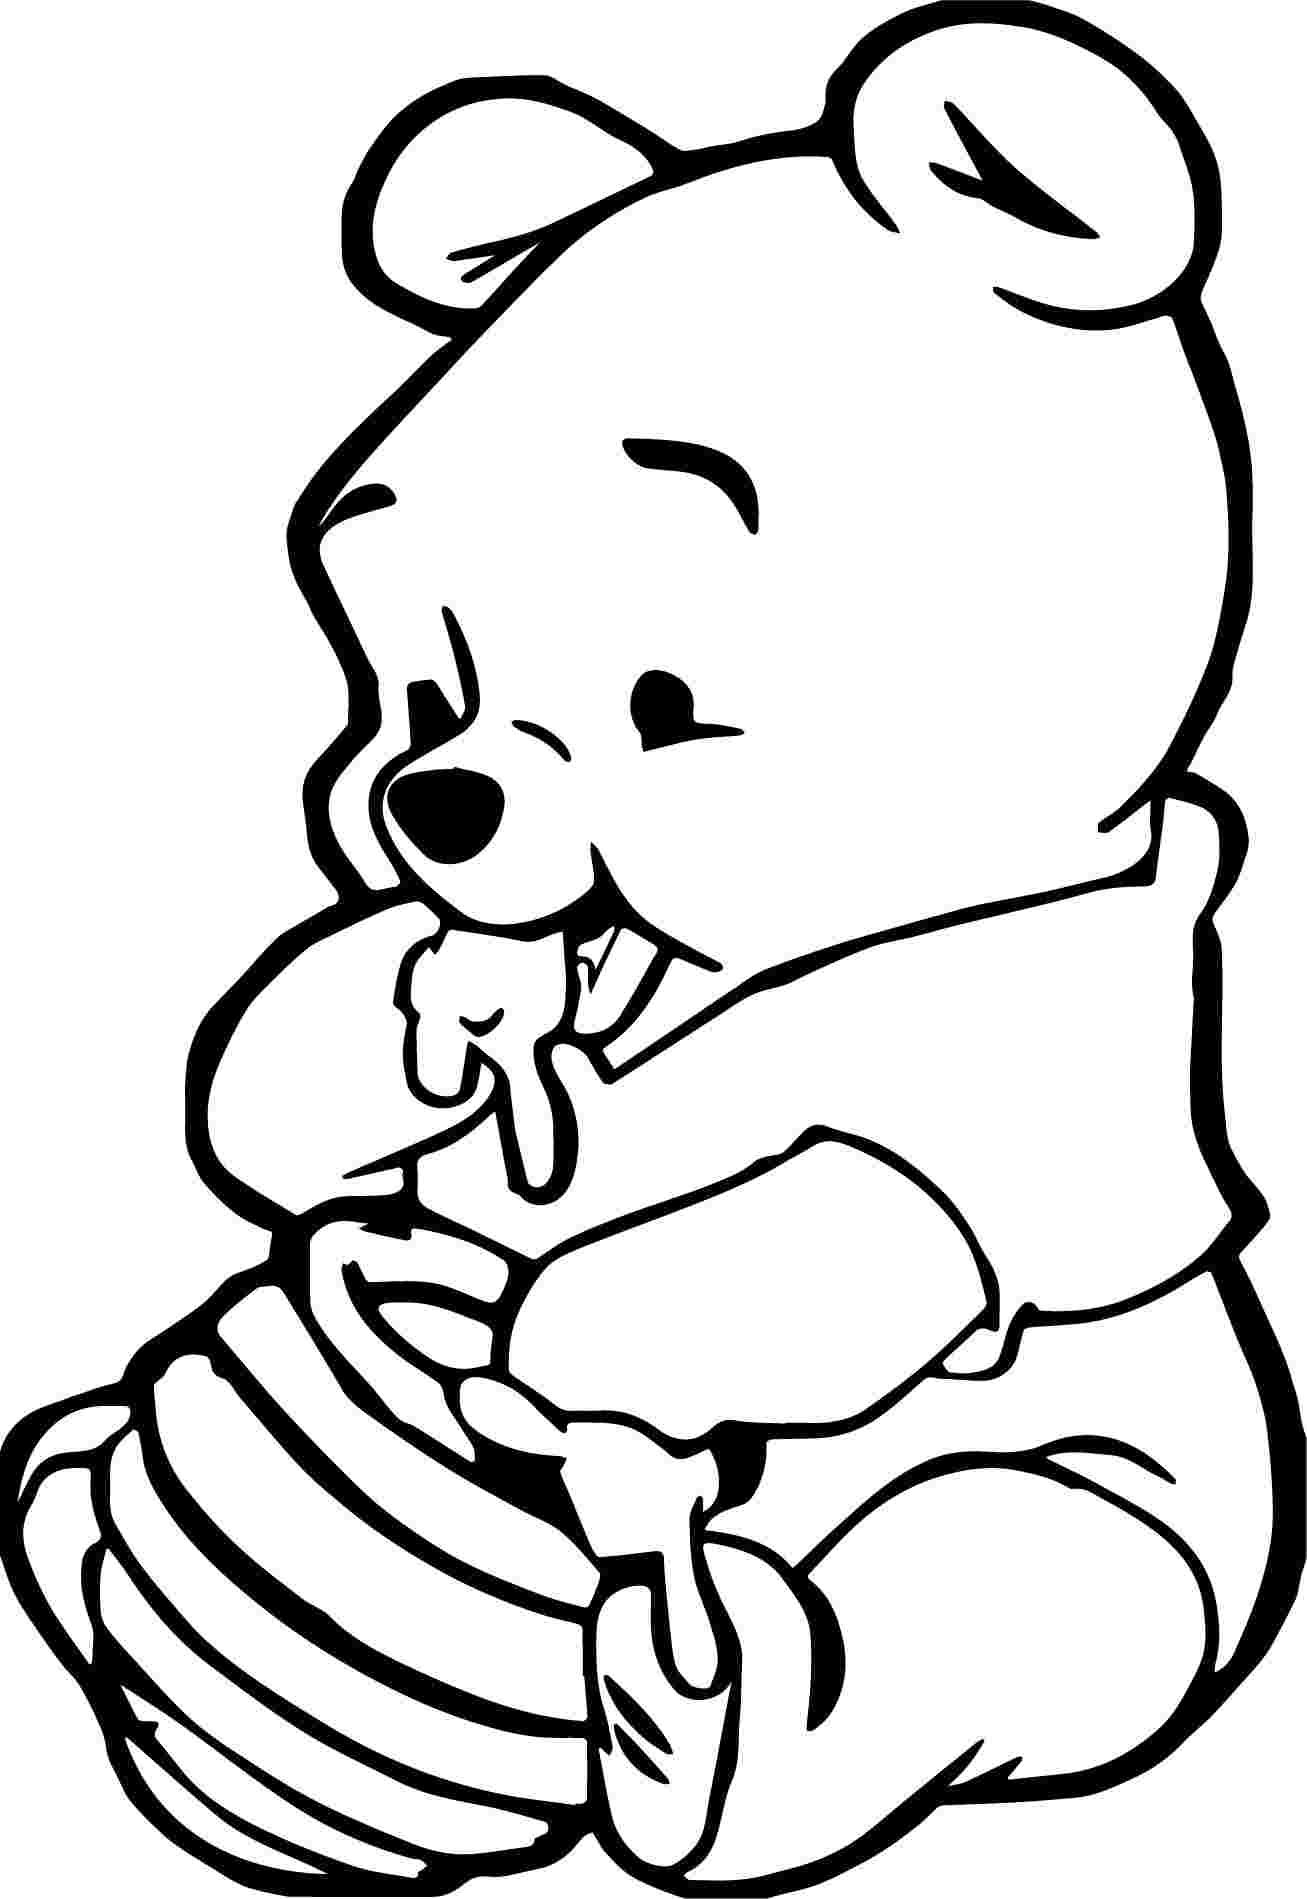 Coloring Pages Of Baby Eeyore Animal Coloring Pages Cute Coloring Pages Zoo Animal Coloring Pages